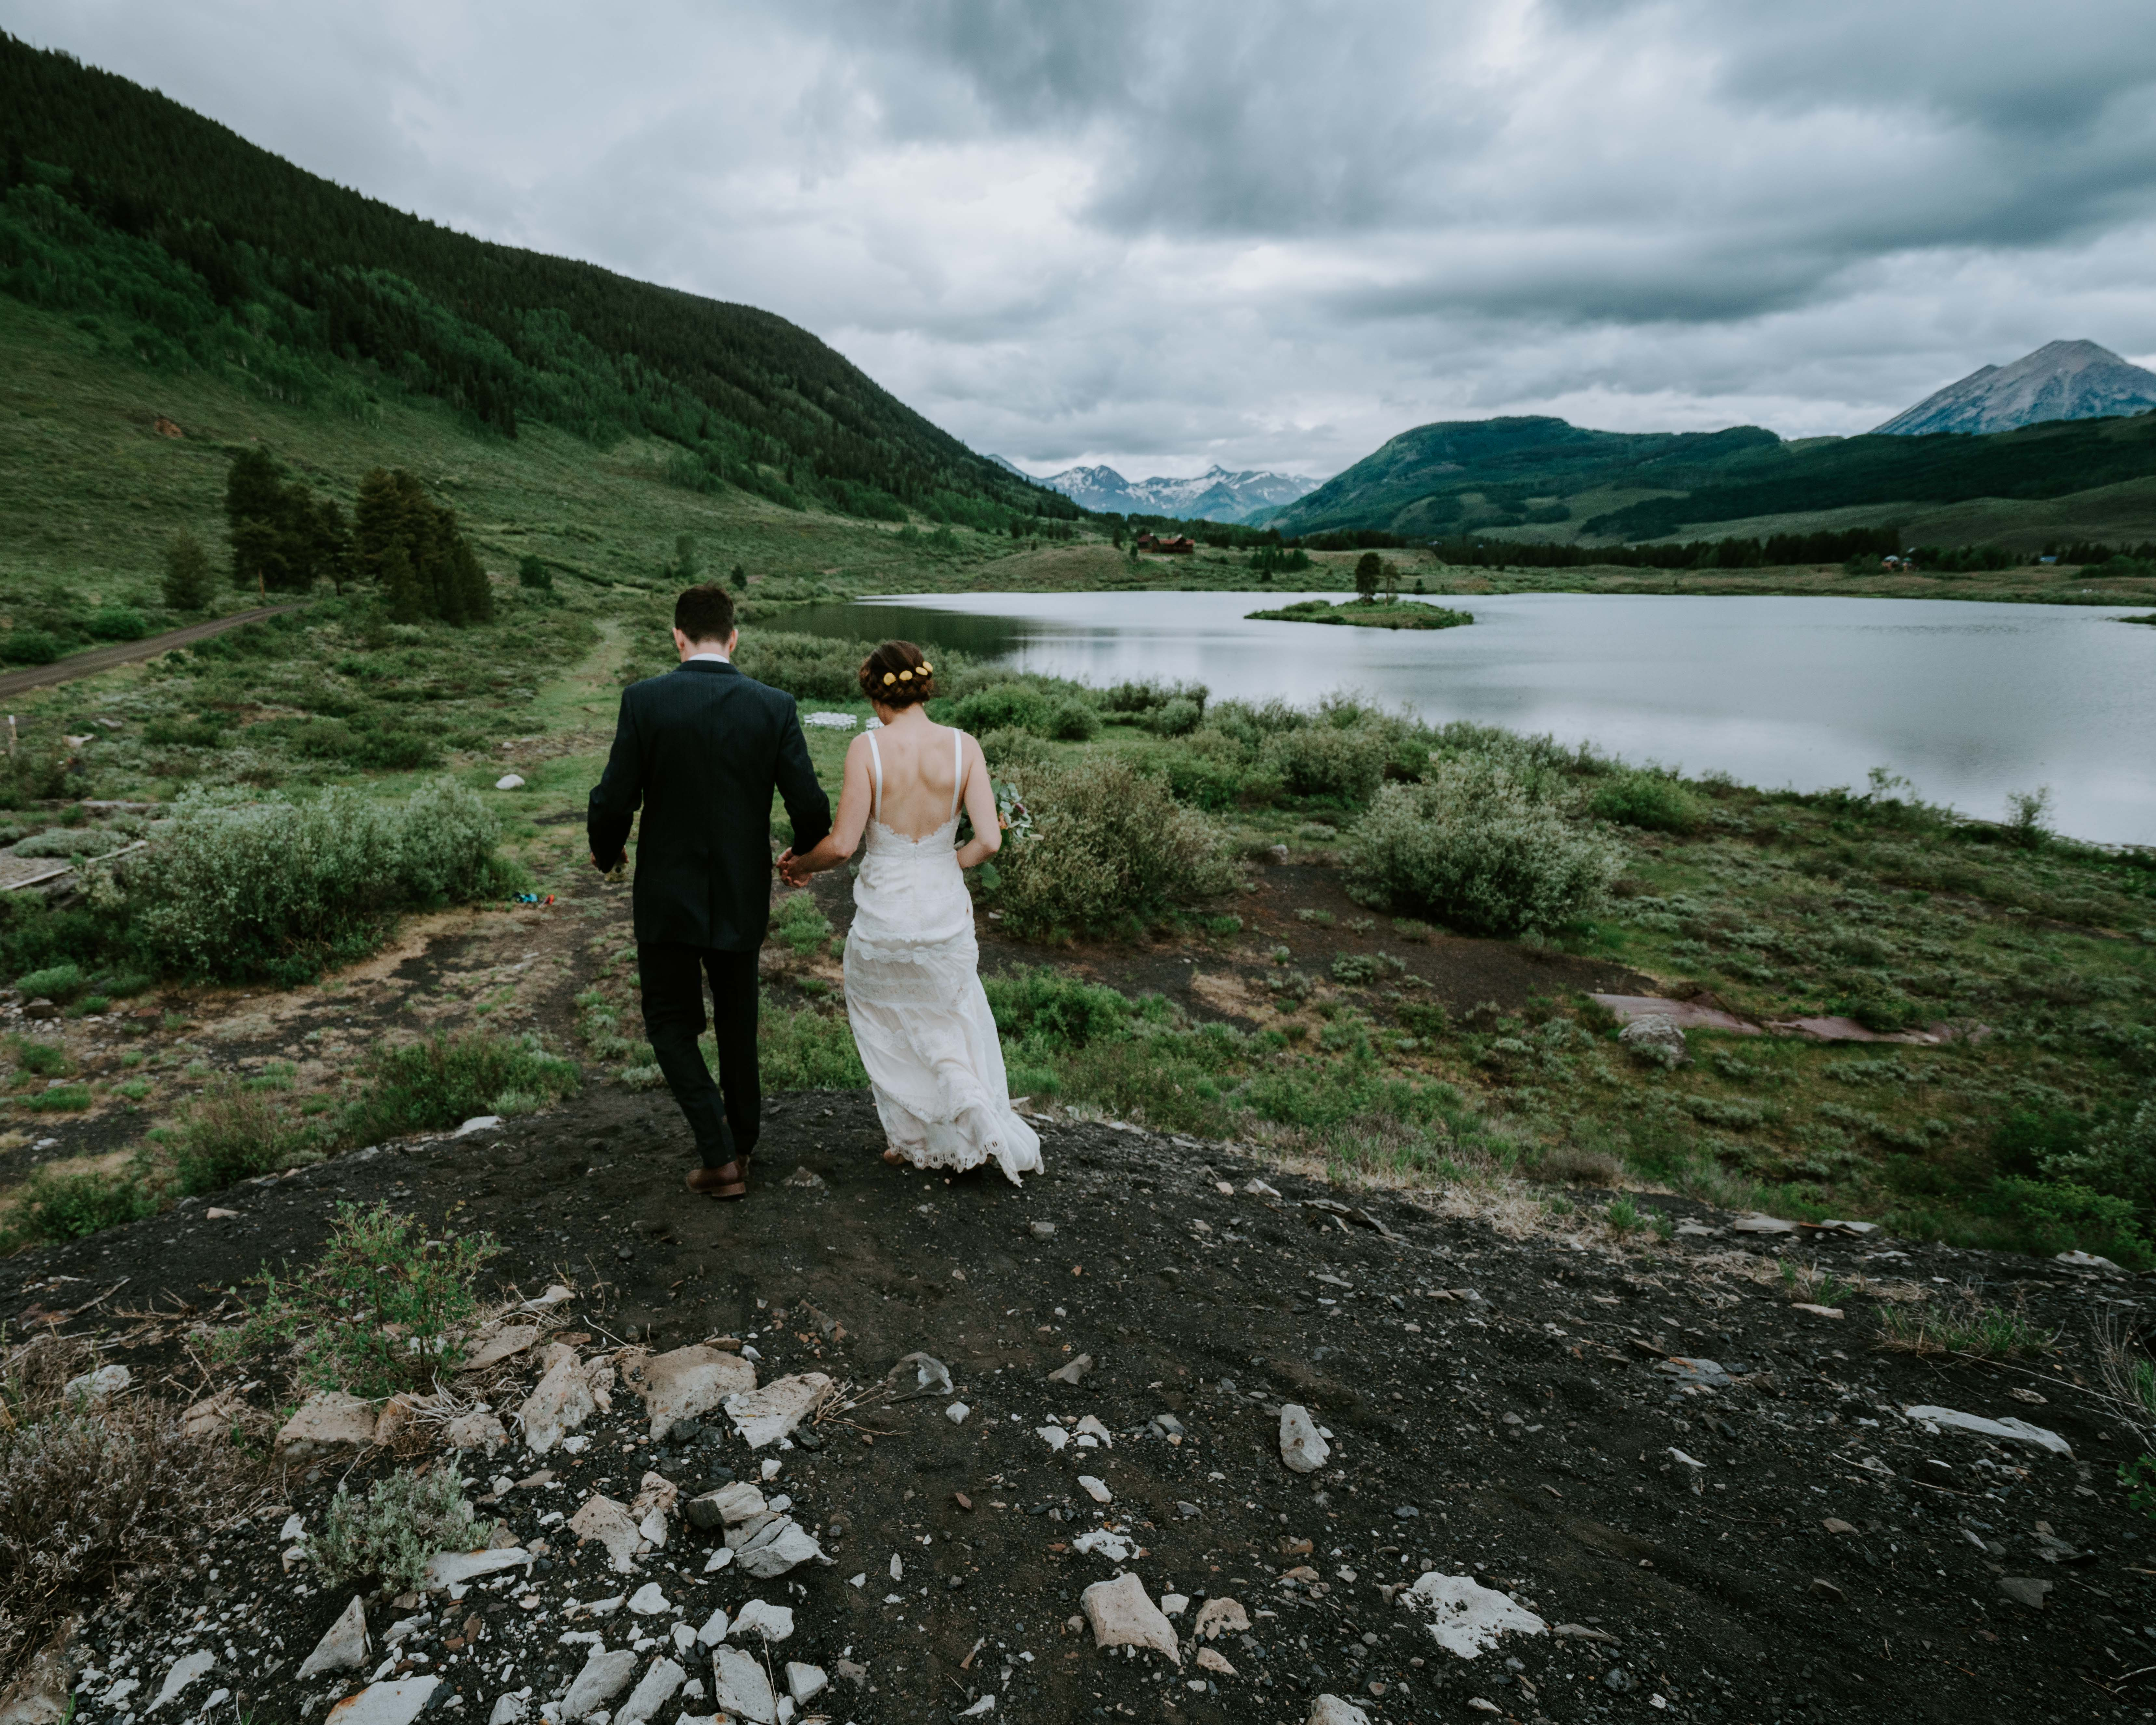 Laura_Alexe_Wedding_Crested_Butte_MegONeillPhotography__180616_138